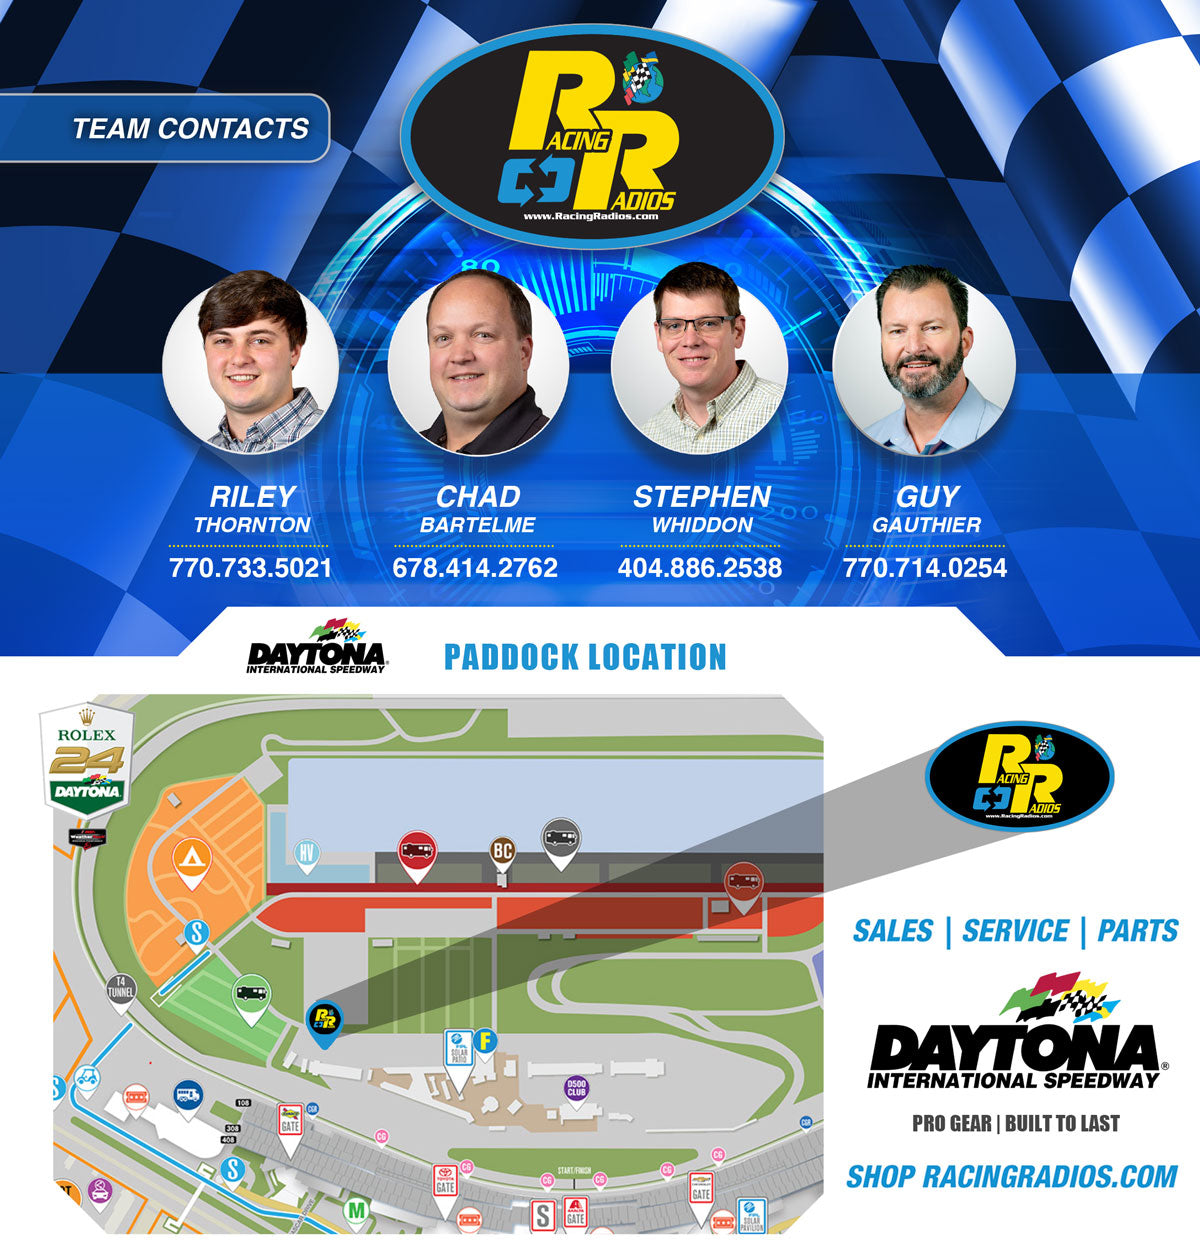 Daytona Roar Before The Rolex 24 | Racing Radios Paddock Location | Daytona